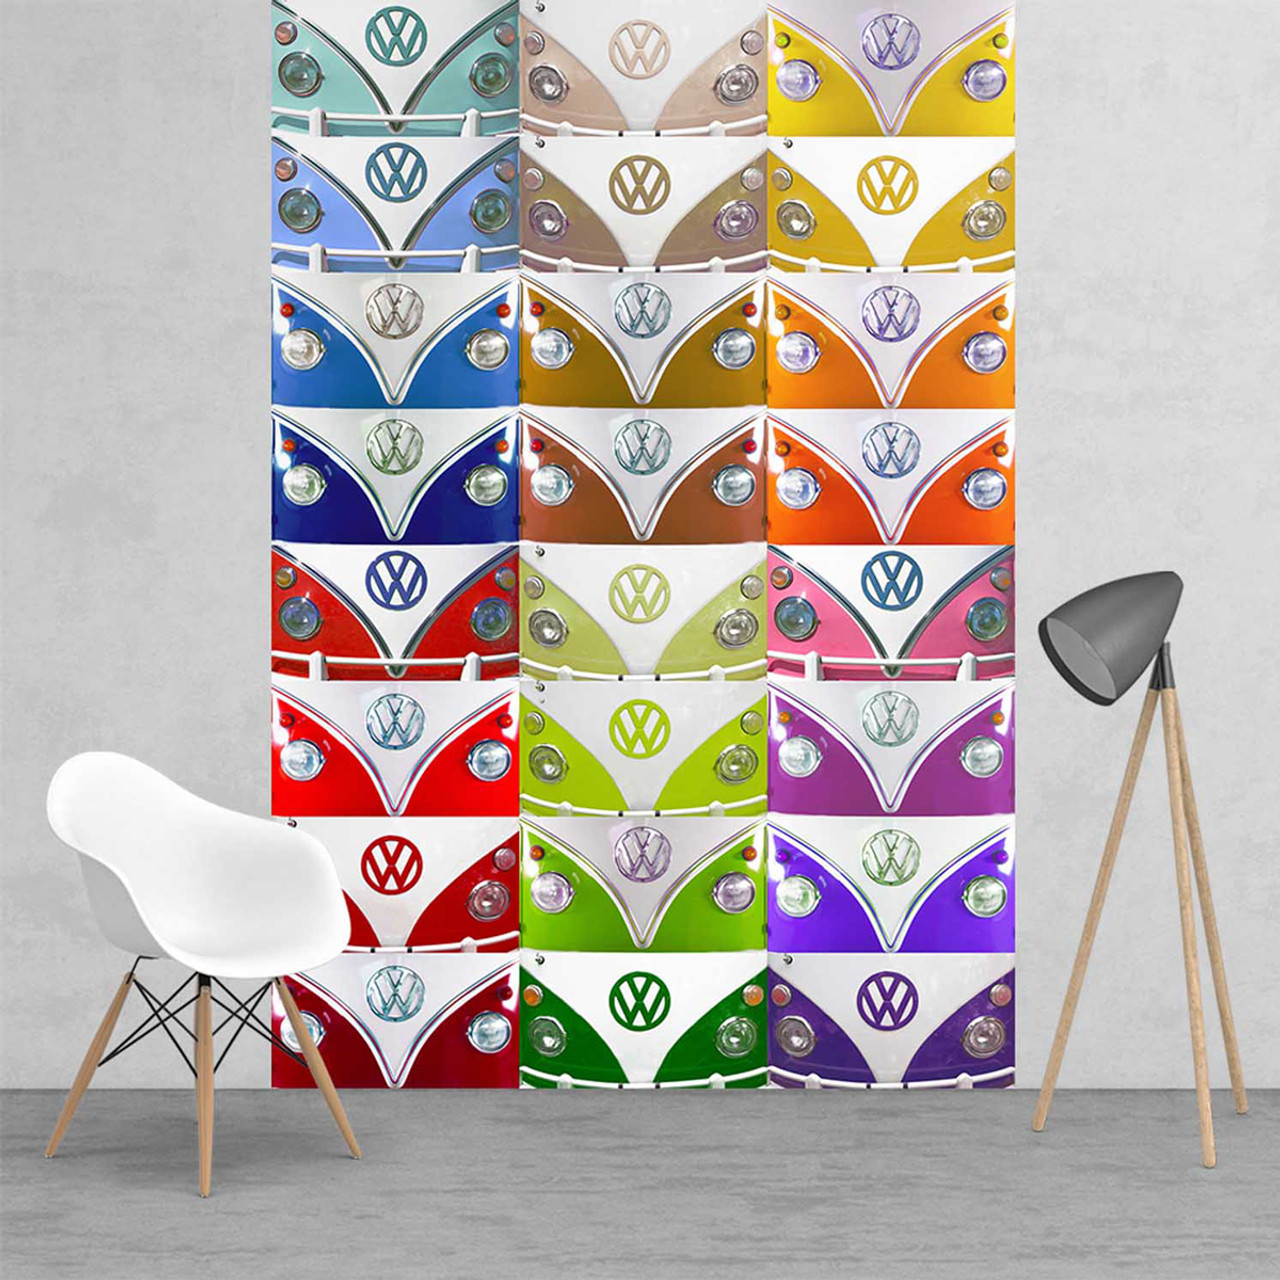 Multi Coloured Campervan Wallpaper Vw Wall Mural Park A Campervan On The Wall